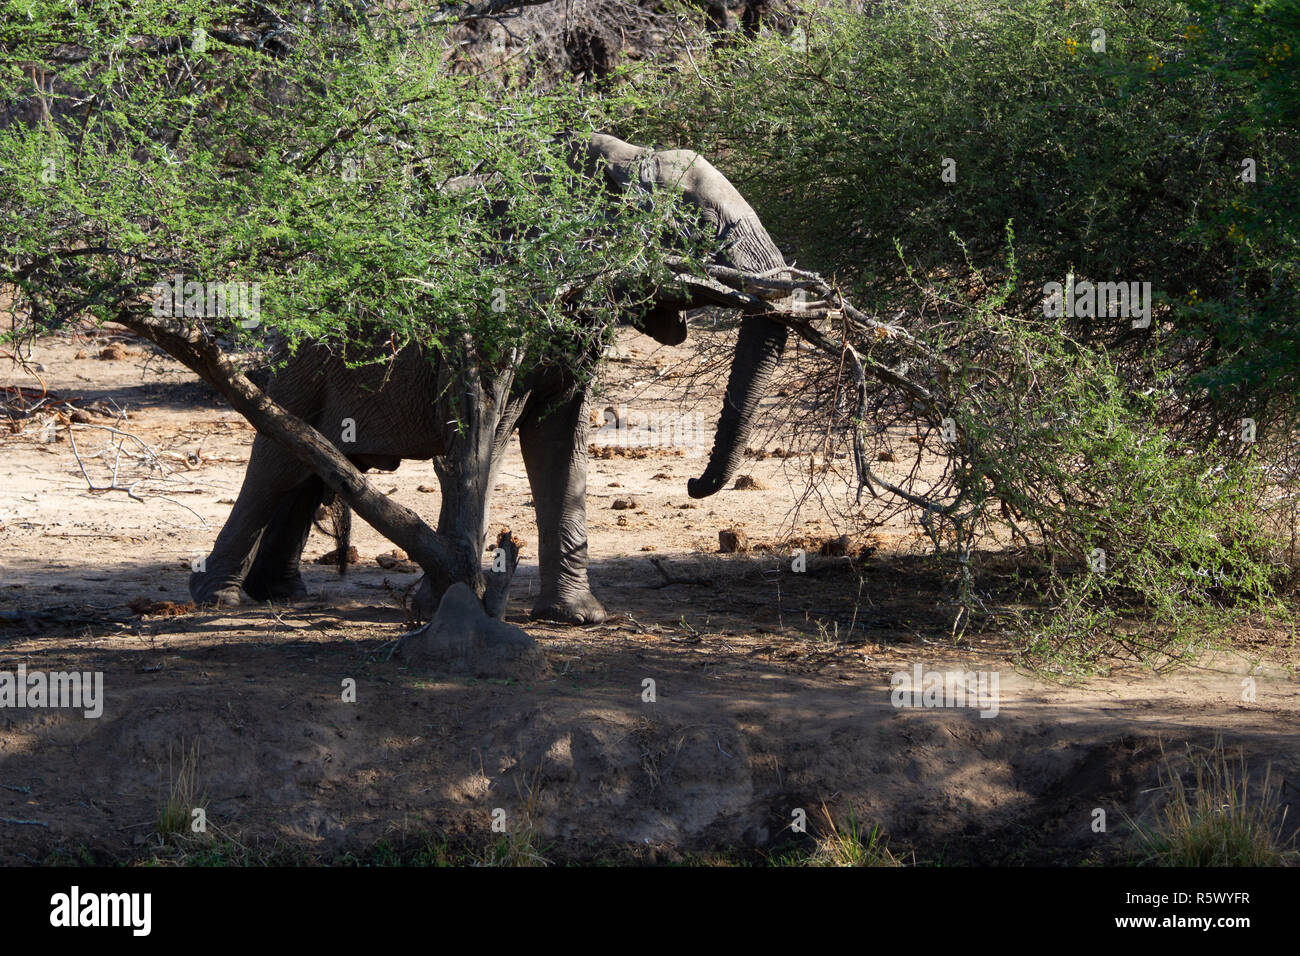 Elephant breaking branch on a tree in the bushveld to reach juicier leaves and wood due to the water shortages in South Africa - Stock Image